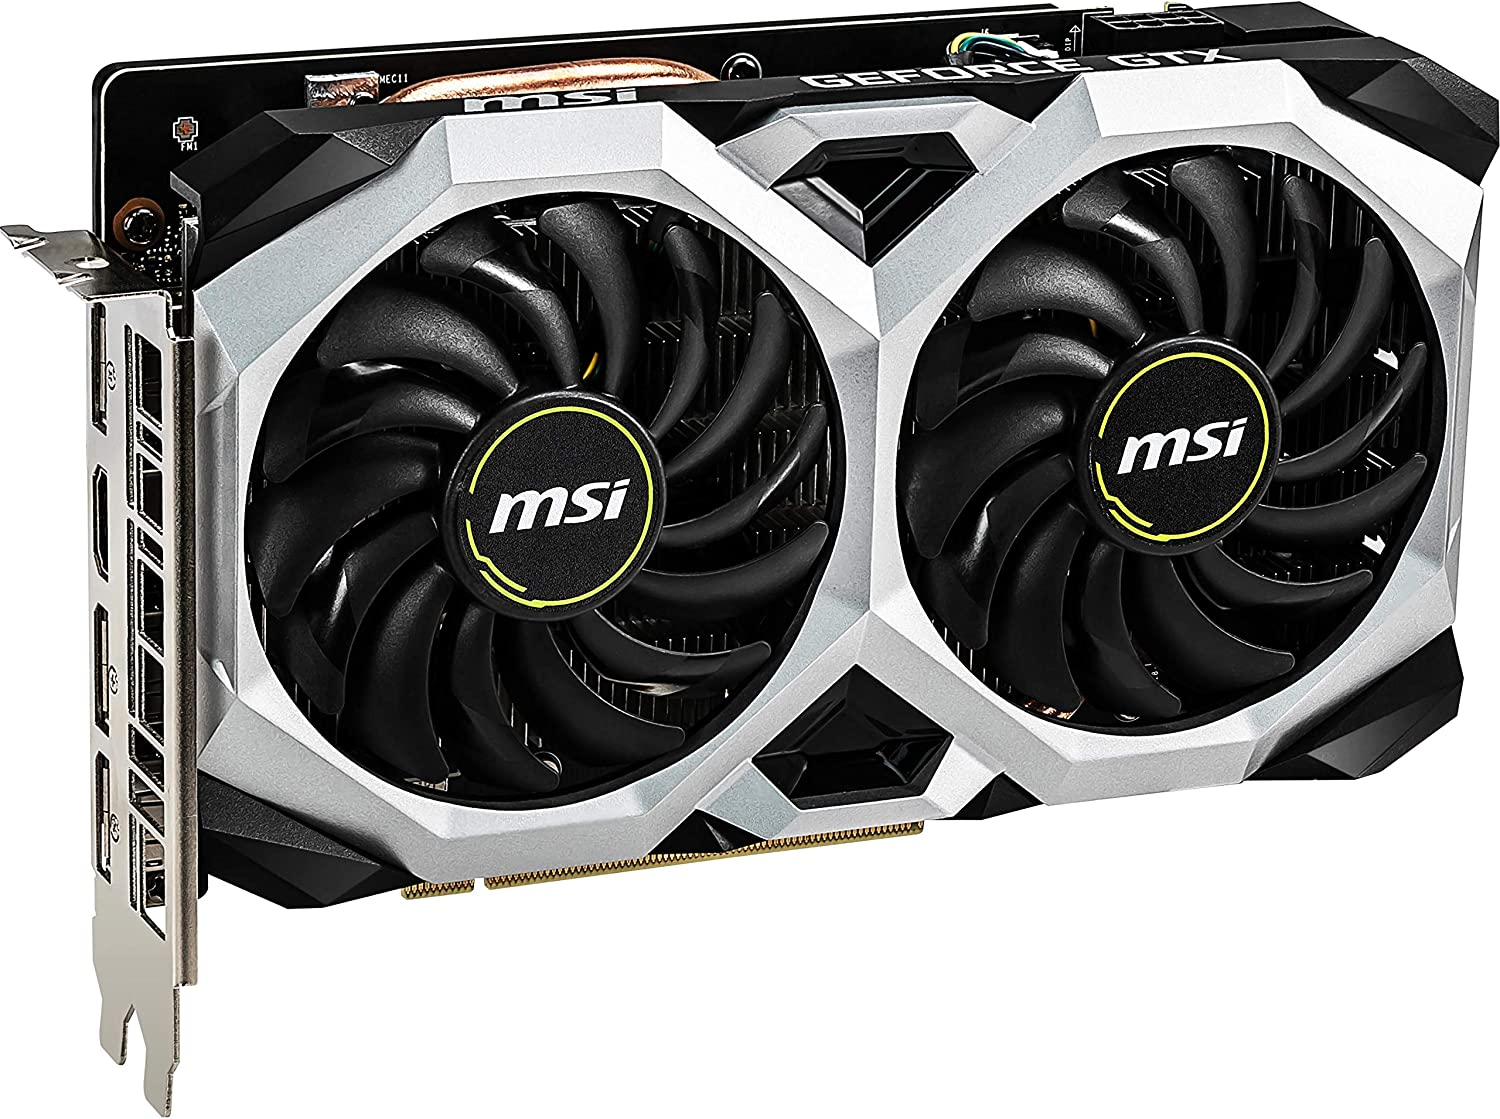 10 Best Graphics Card Black Friday Deals, Sales & Ads in 2021 3